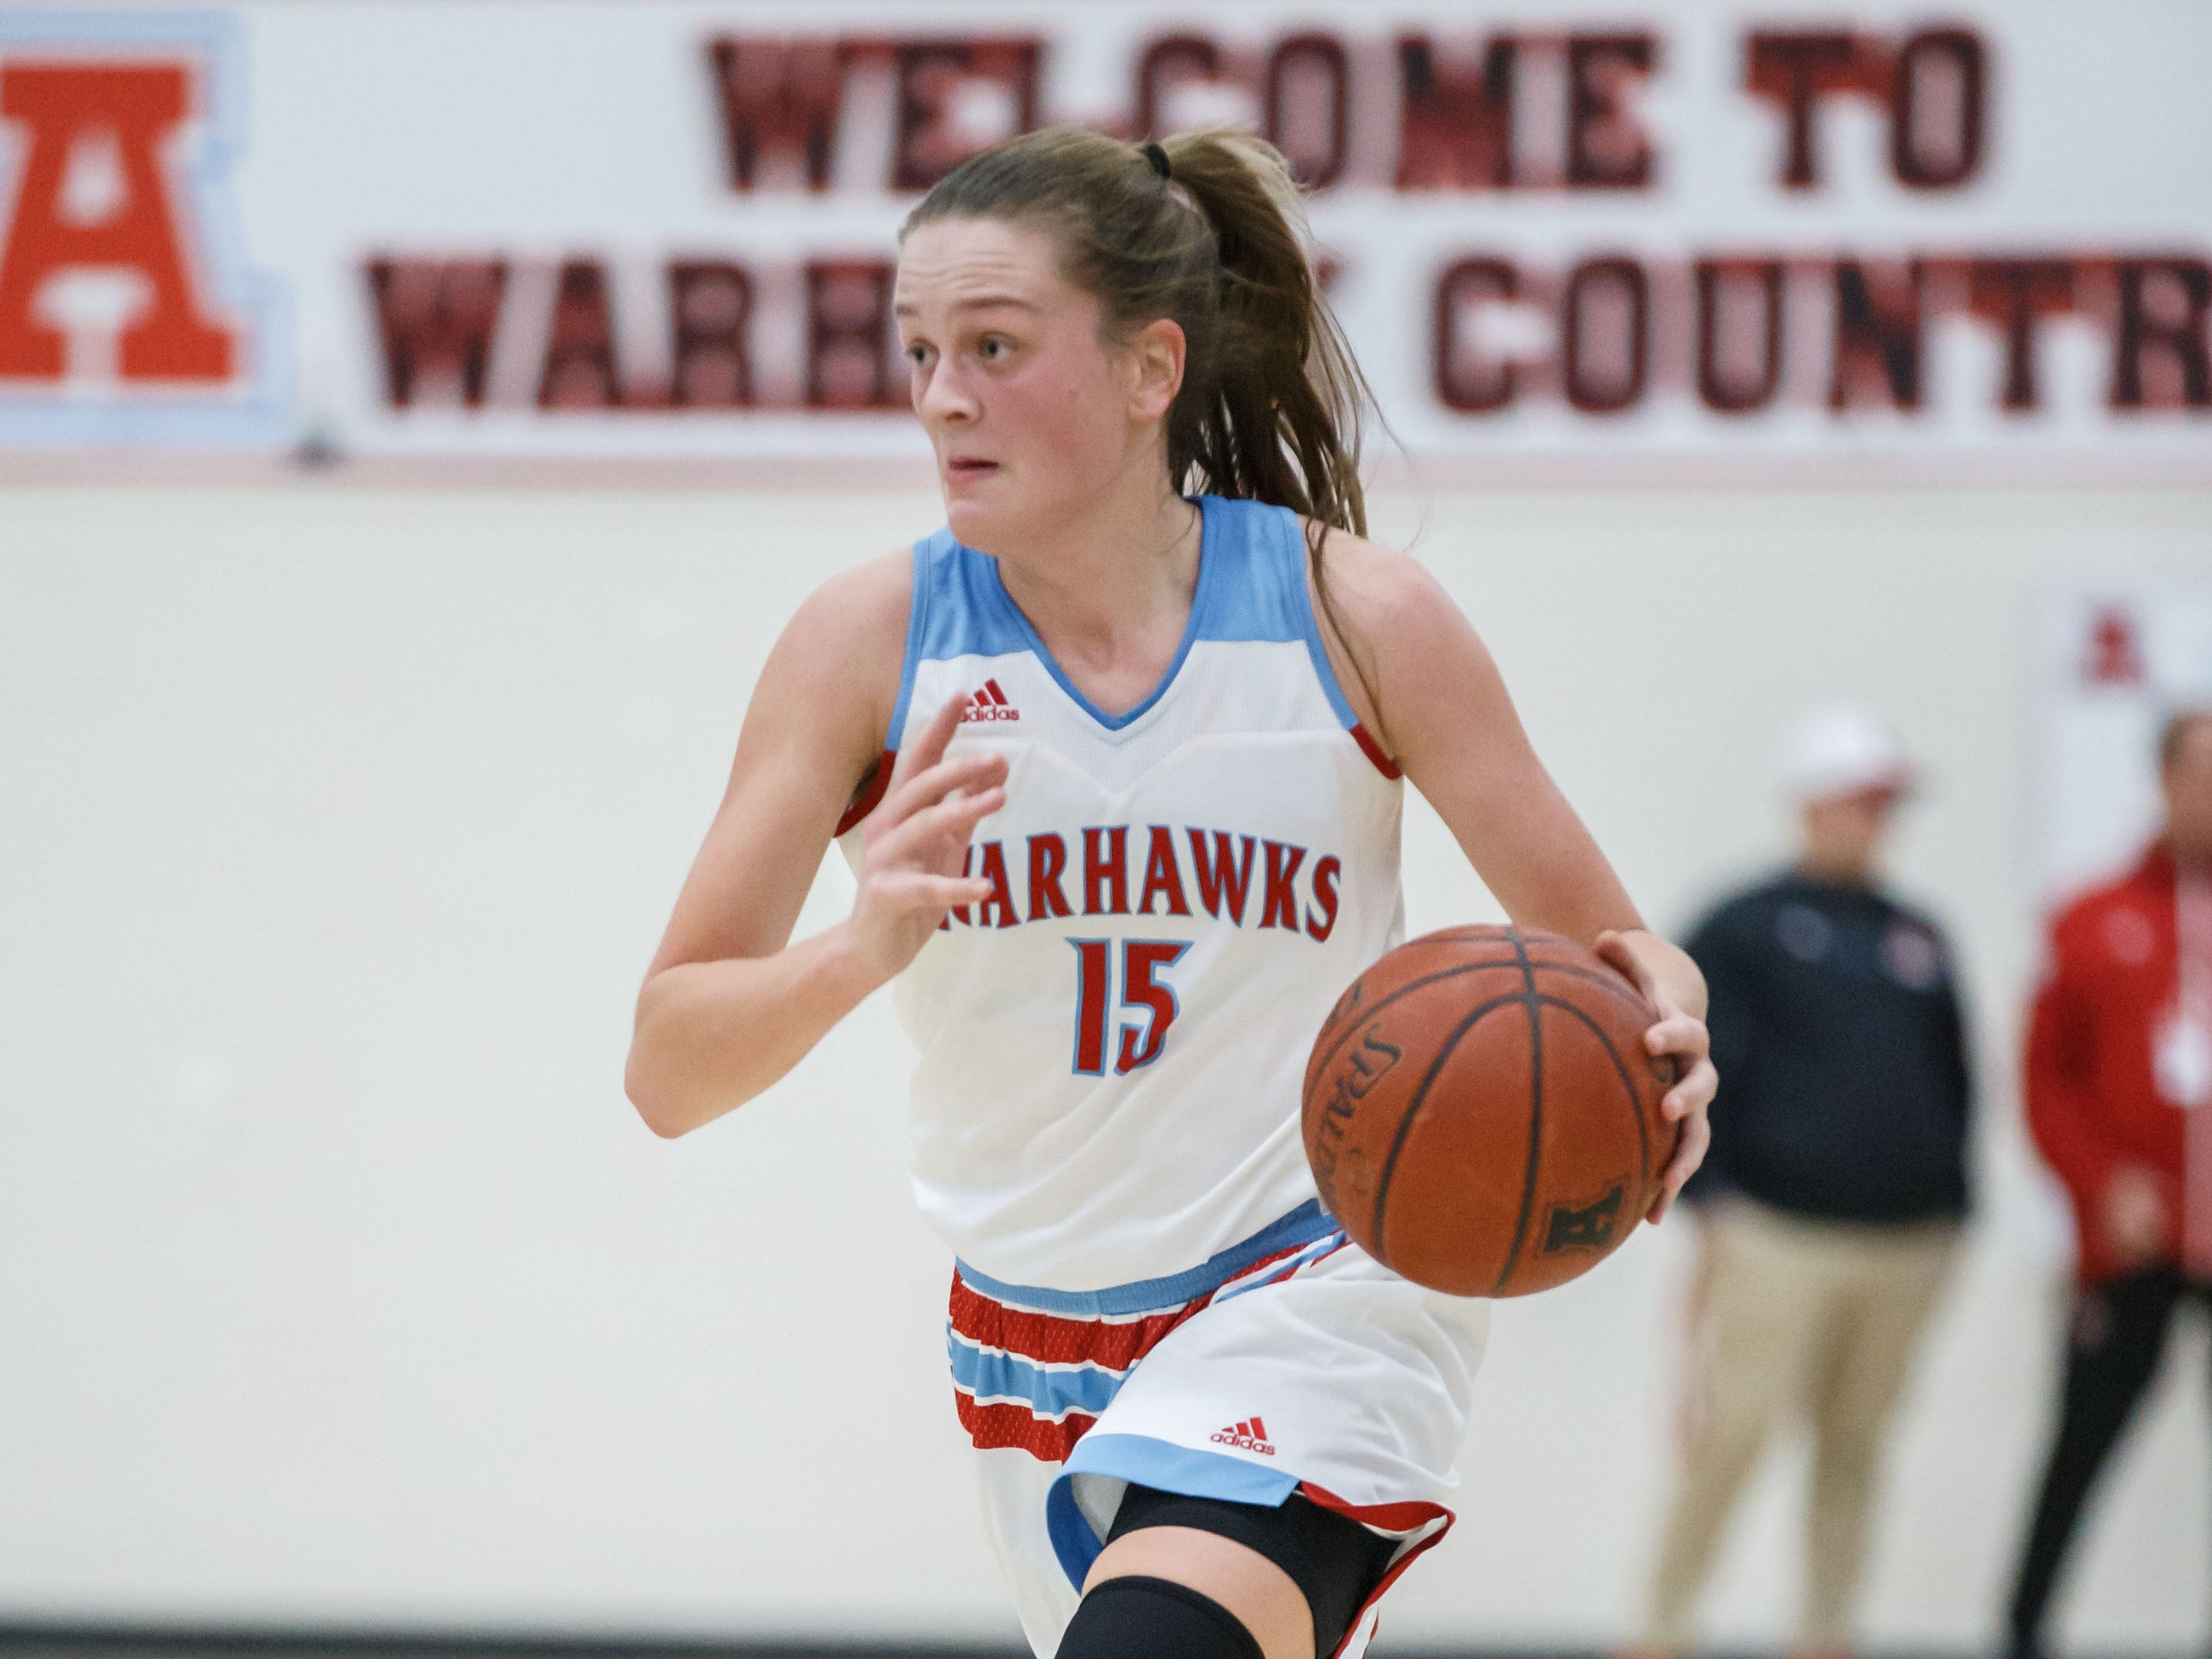 Arrowhead sophomore Phoebe Frentzel (15) races downcourt during the game at home against Oak Creek on Friday, Nov. 16, 2018.